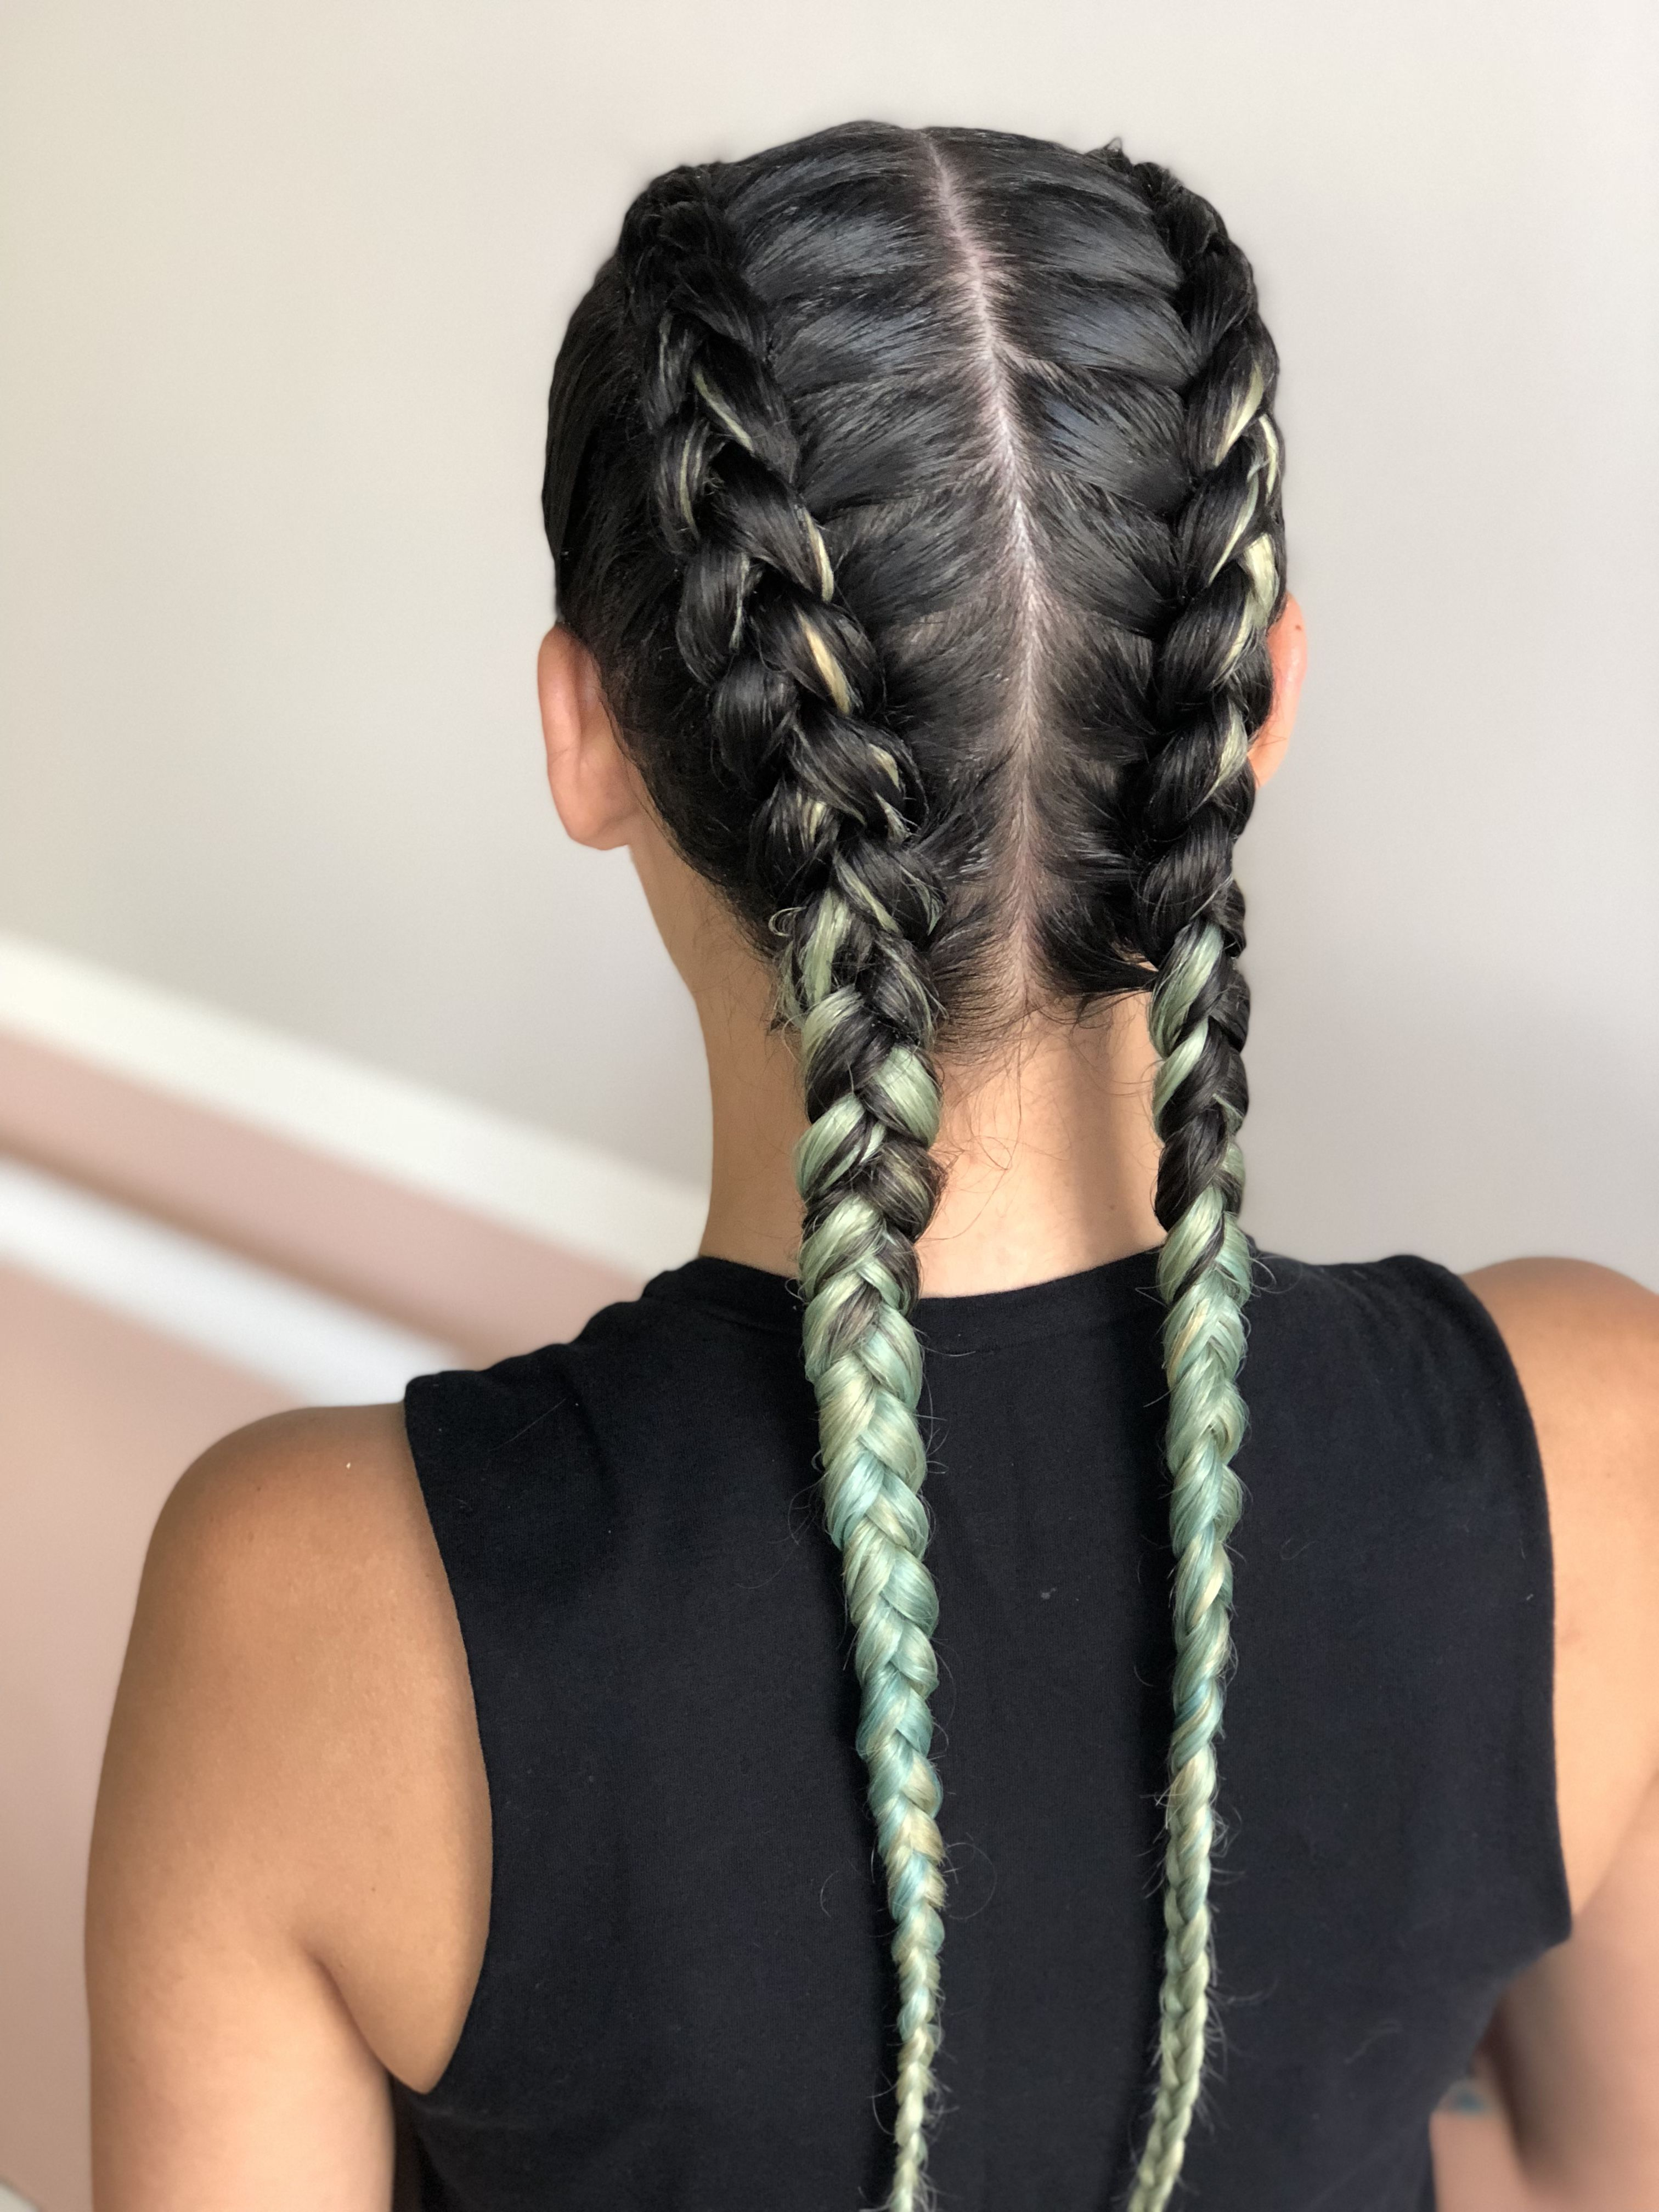 two french braids hair style on fantasy color hair | braid